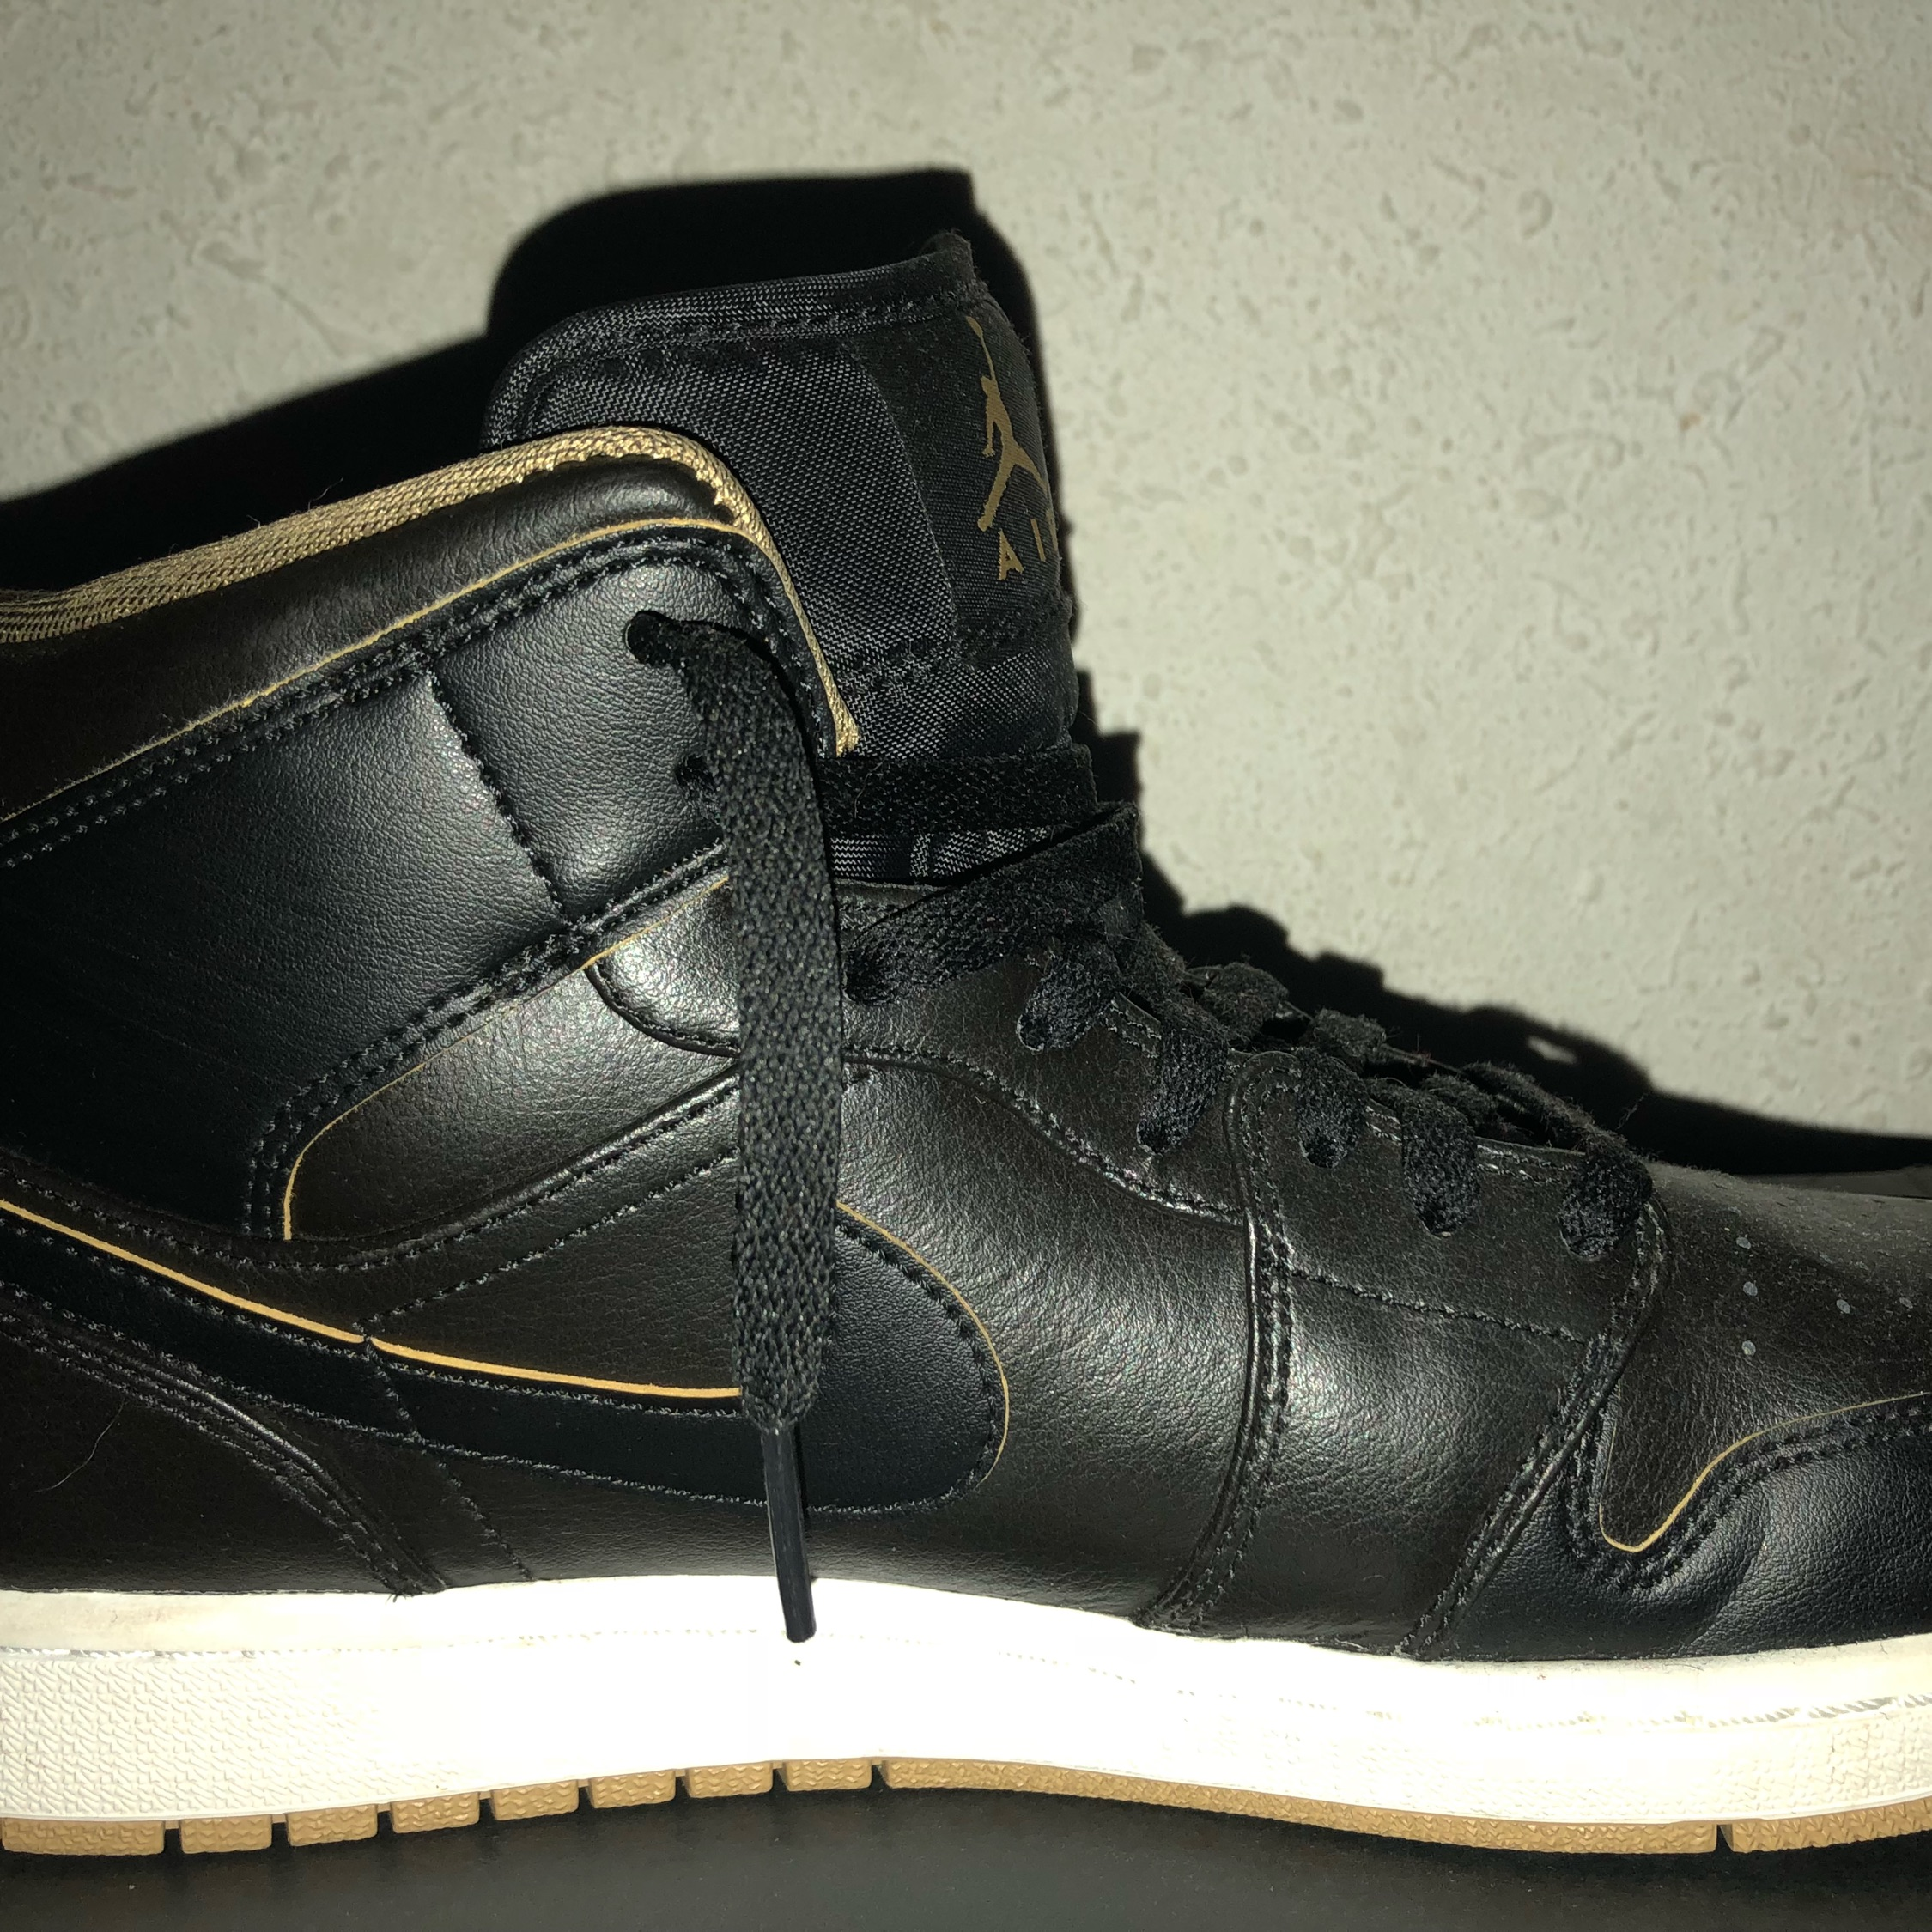 best sale exquisite style on feet shots of Air Jordan 1 Mid Black/Metallic Gold